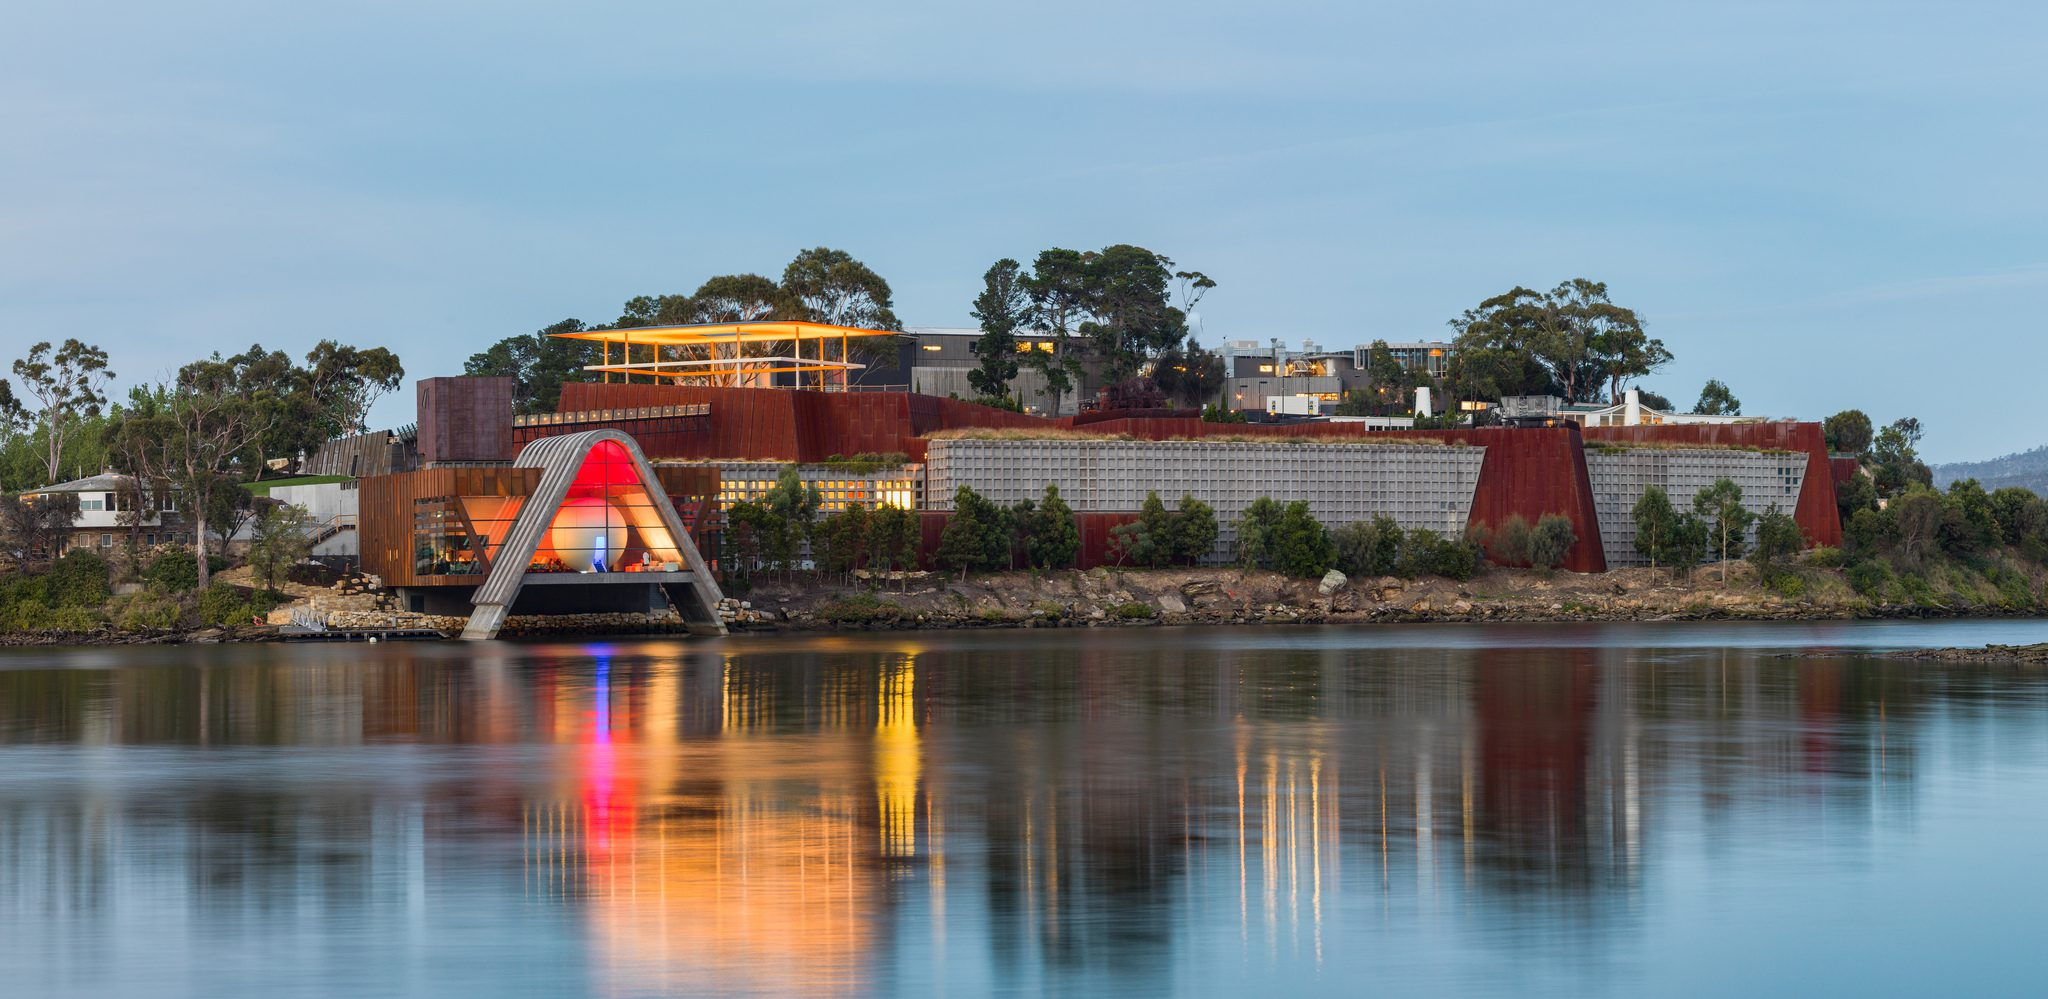 Views of MONA from the River Derwent via MONA.